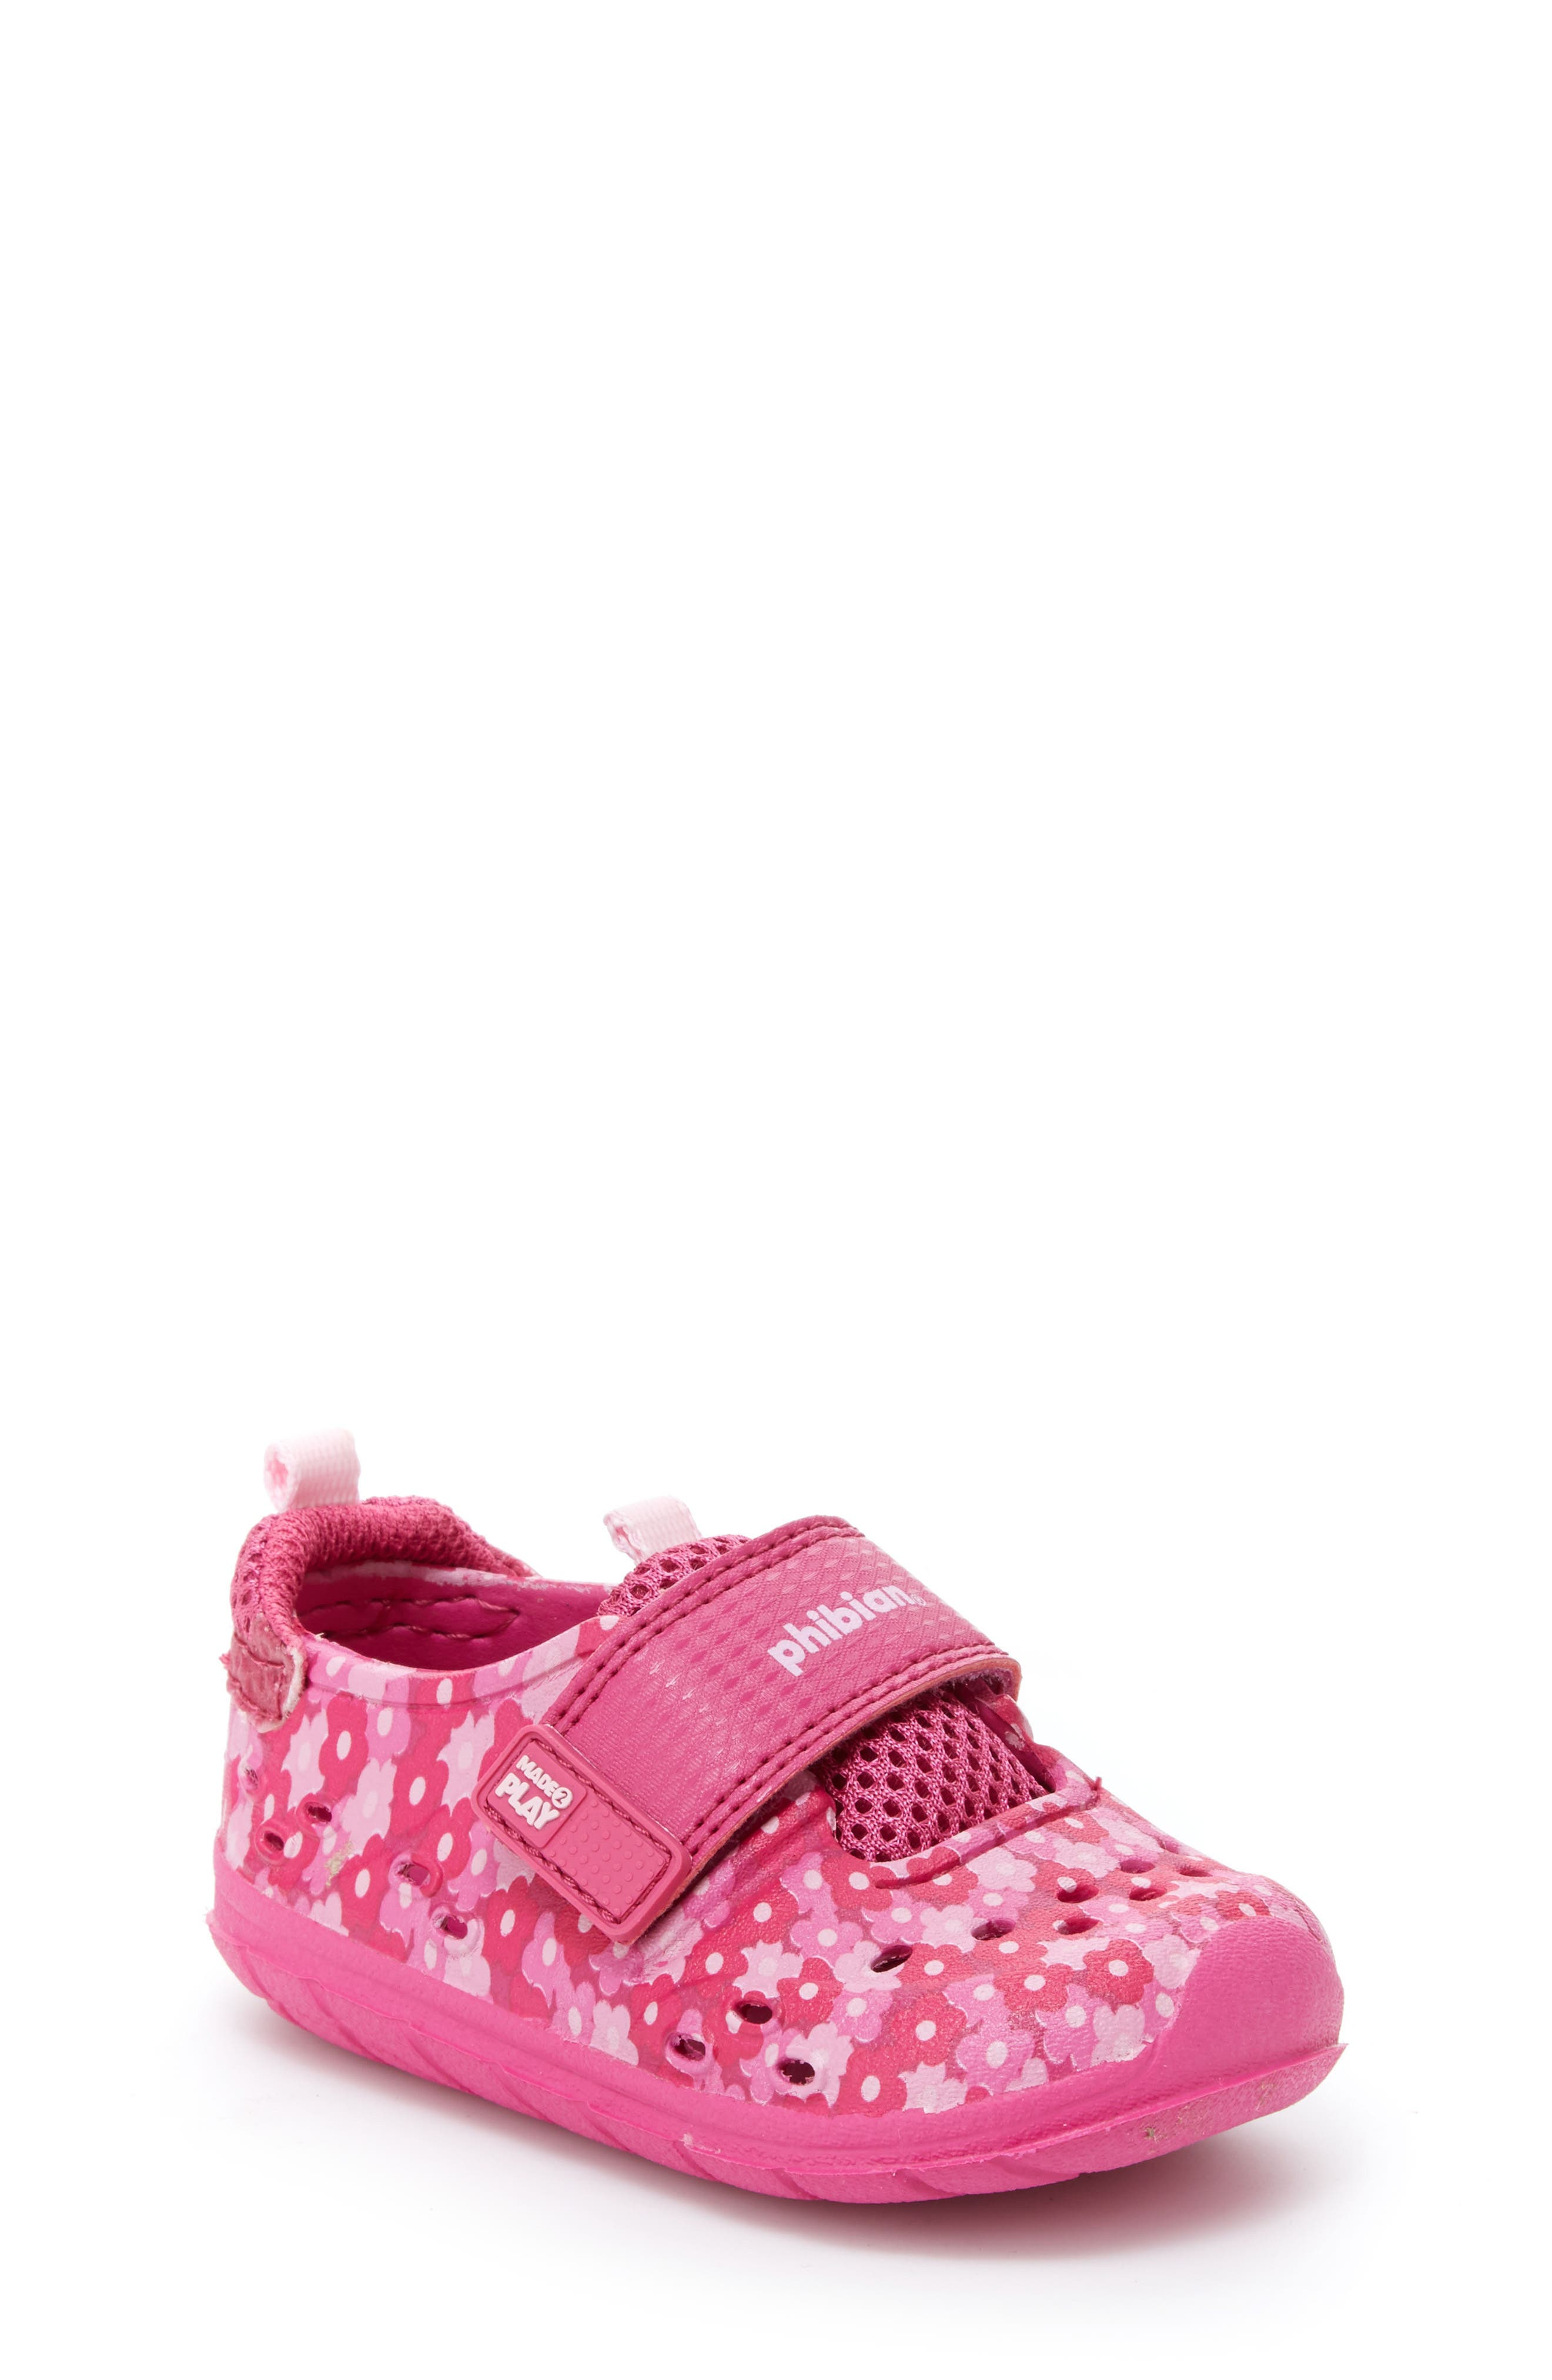 STRIDE RITE, Made2Play<sup>®</sup> Phibian Sneaker, Main thumbnail 1, color, PINK FLORAL EVA